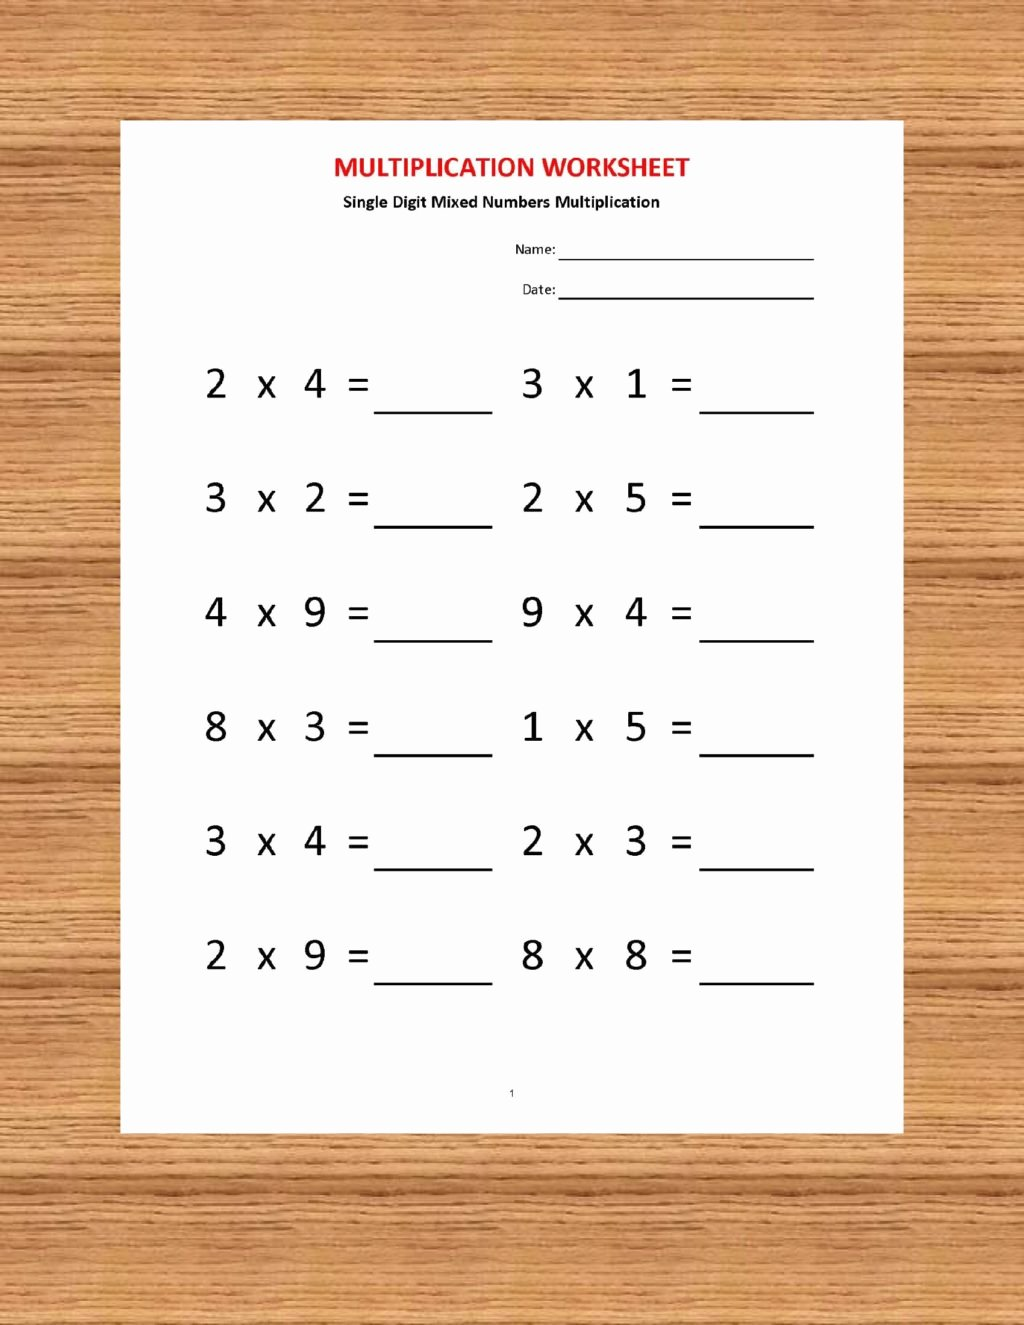 2nd Grade Multiplication Worksheets New Worksheet Splendi 2nd Grade Math Worksheetsltiplication